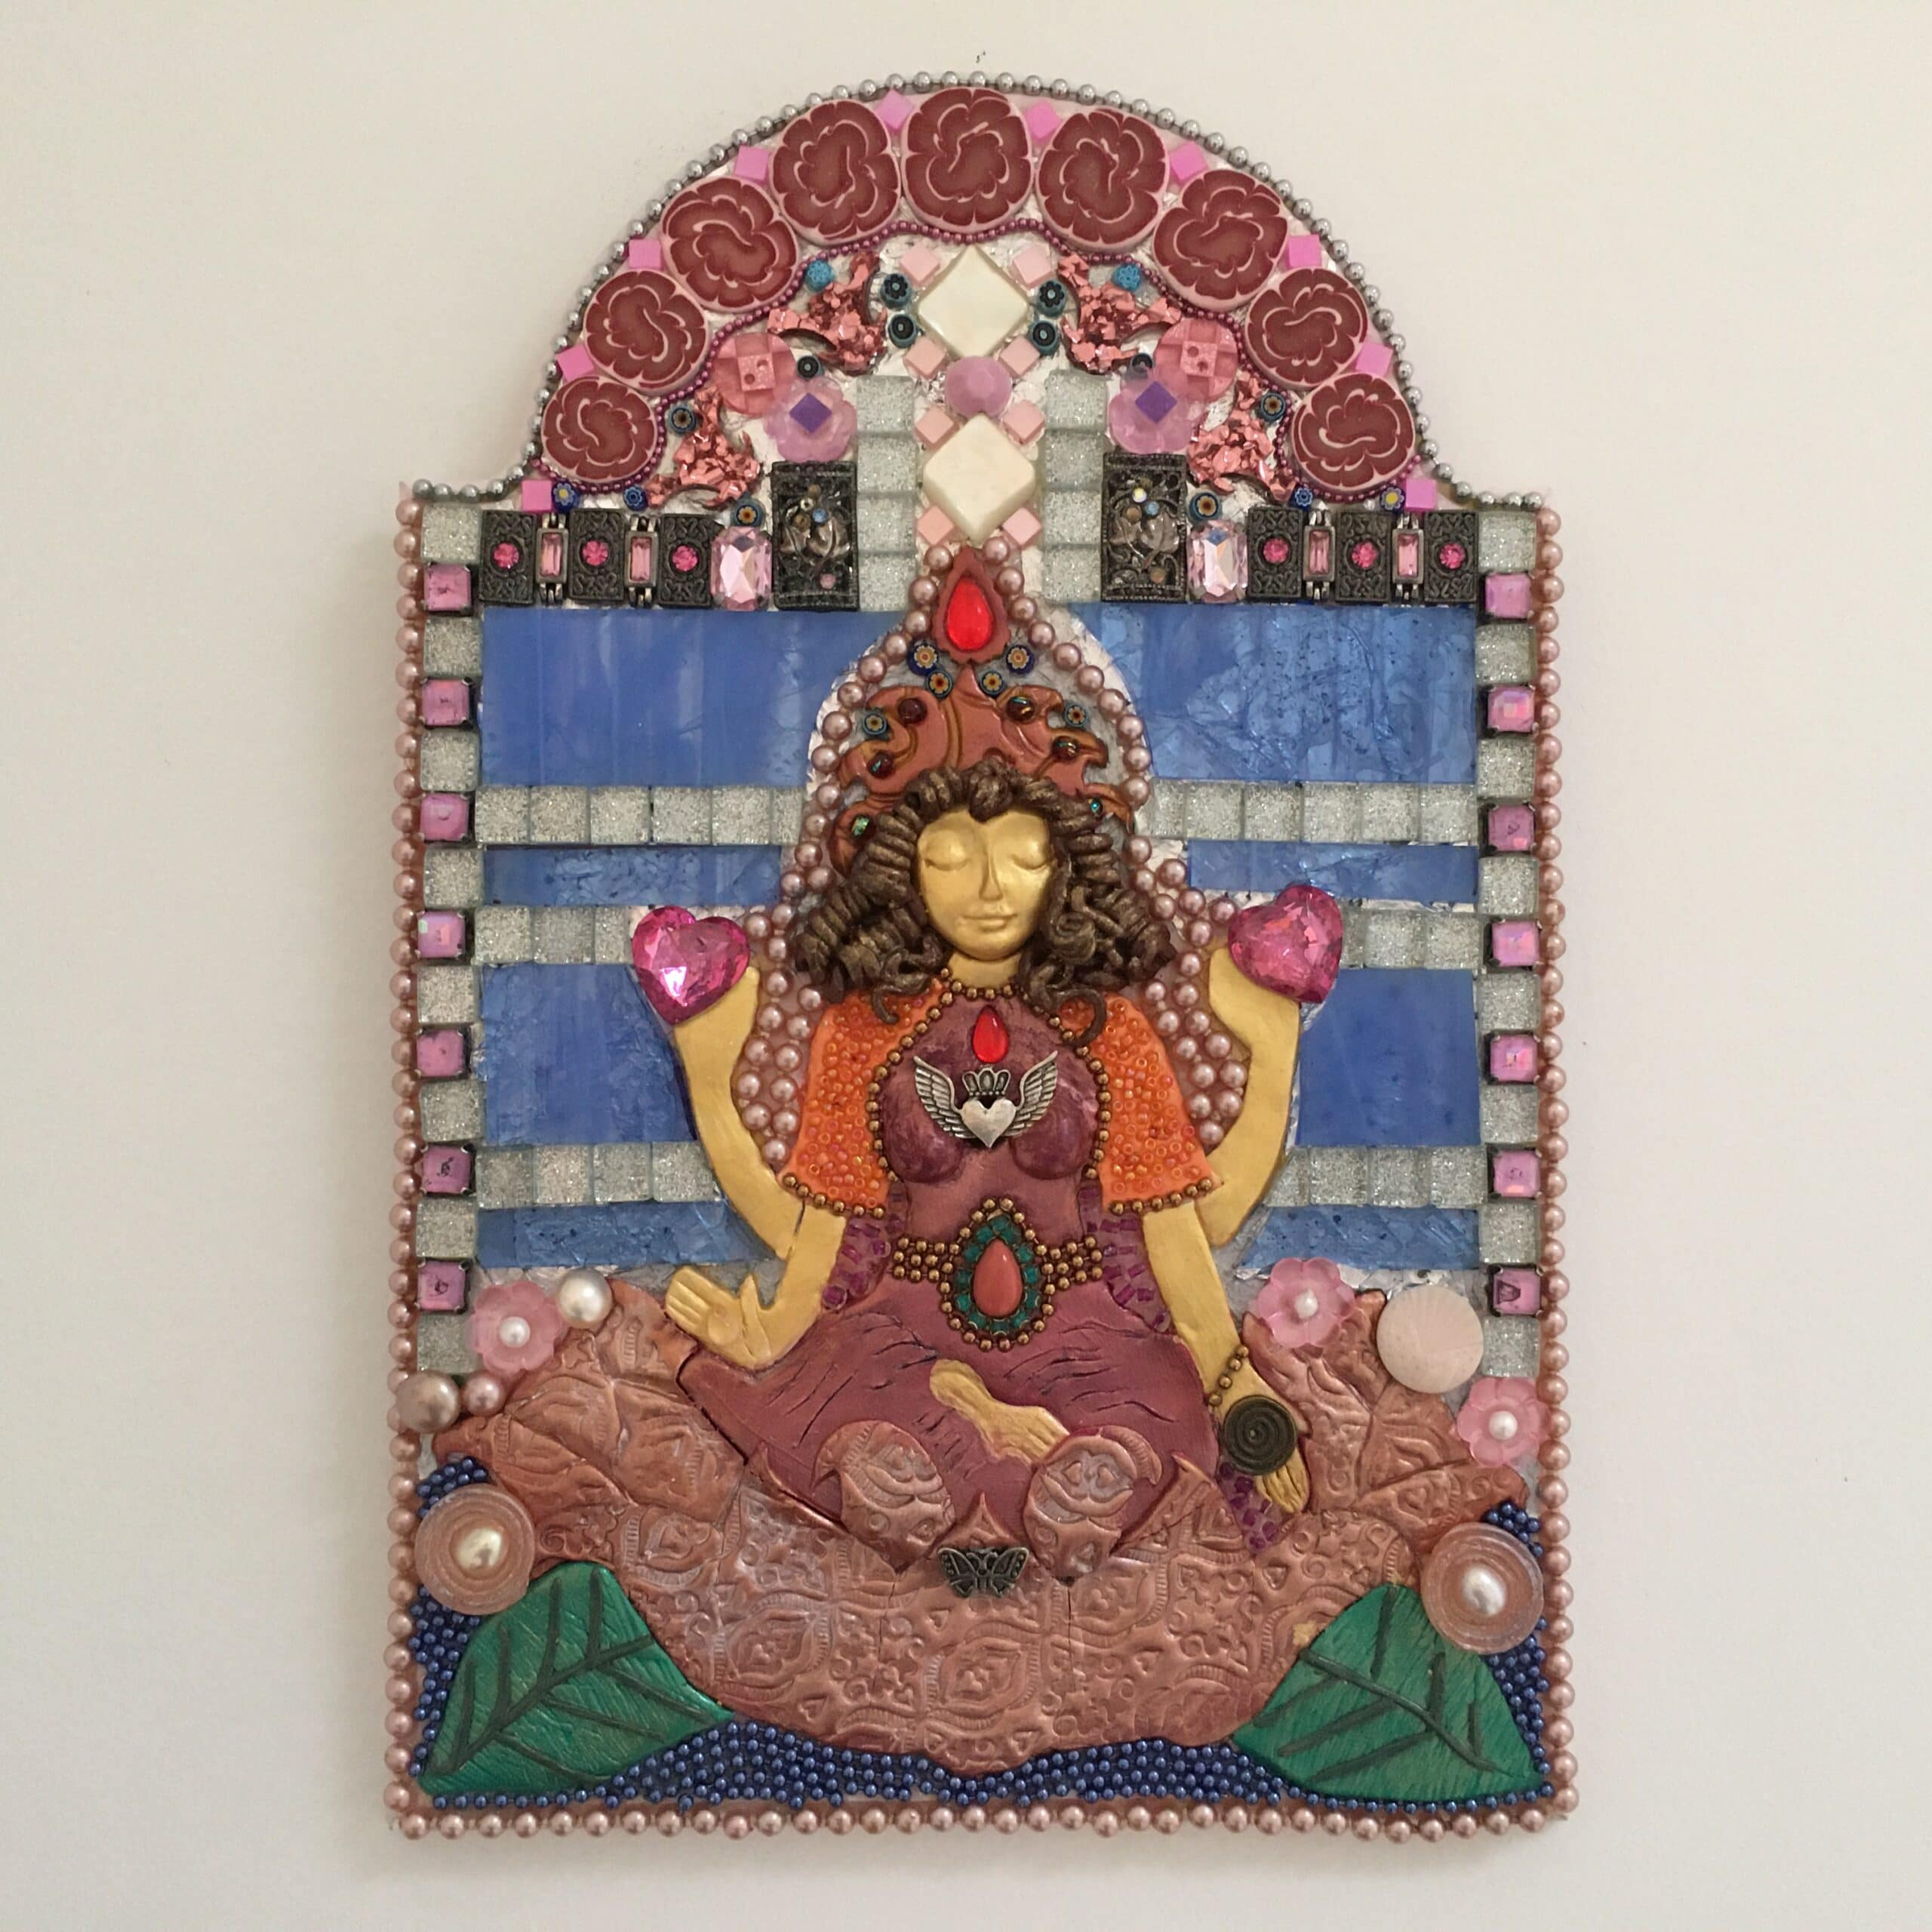 A mixed media mosaic featuring a central female figure with four arms who is seated on a lotus lflower and offering gifts from her hands.